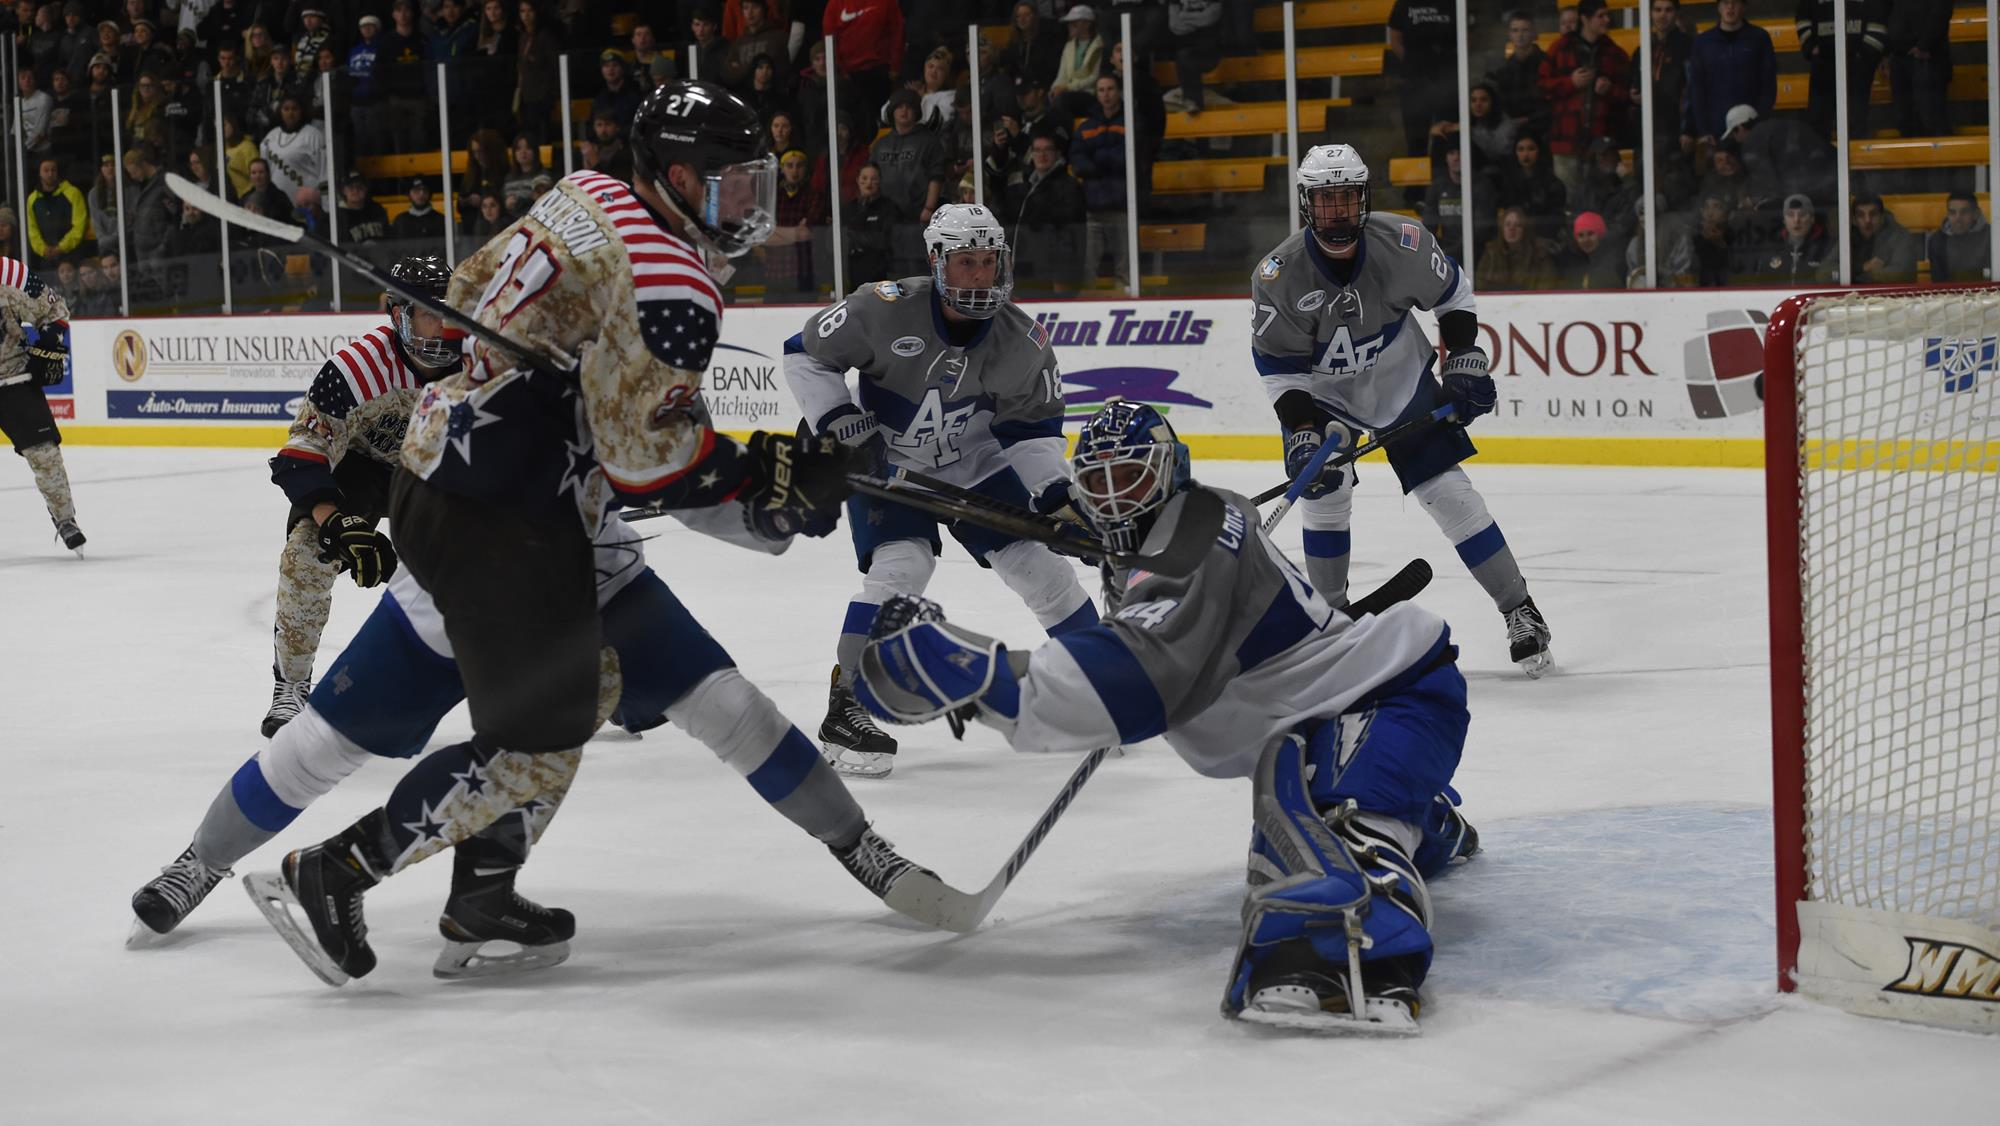 Bronco Hockey Heads to Providence for East Regional Semifinal Against Air Force